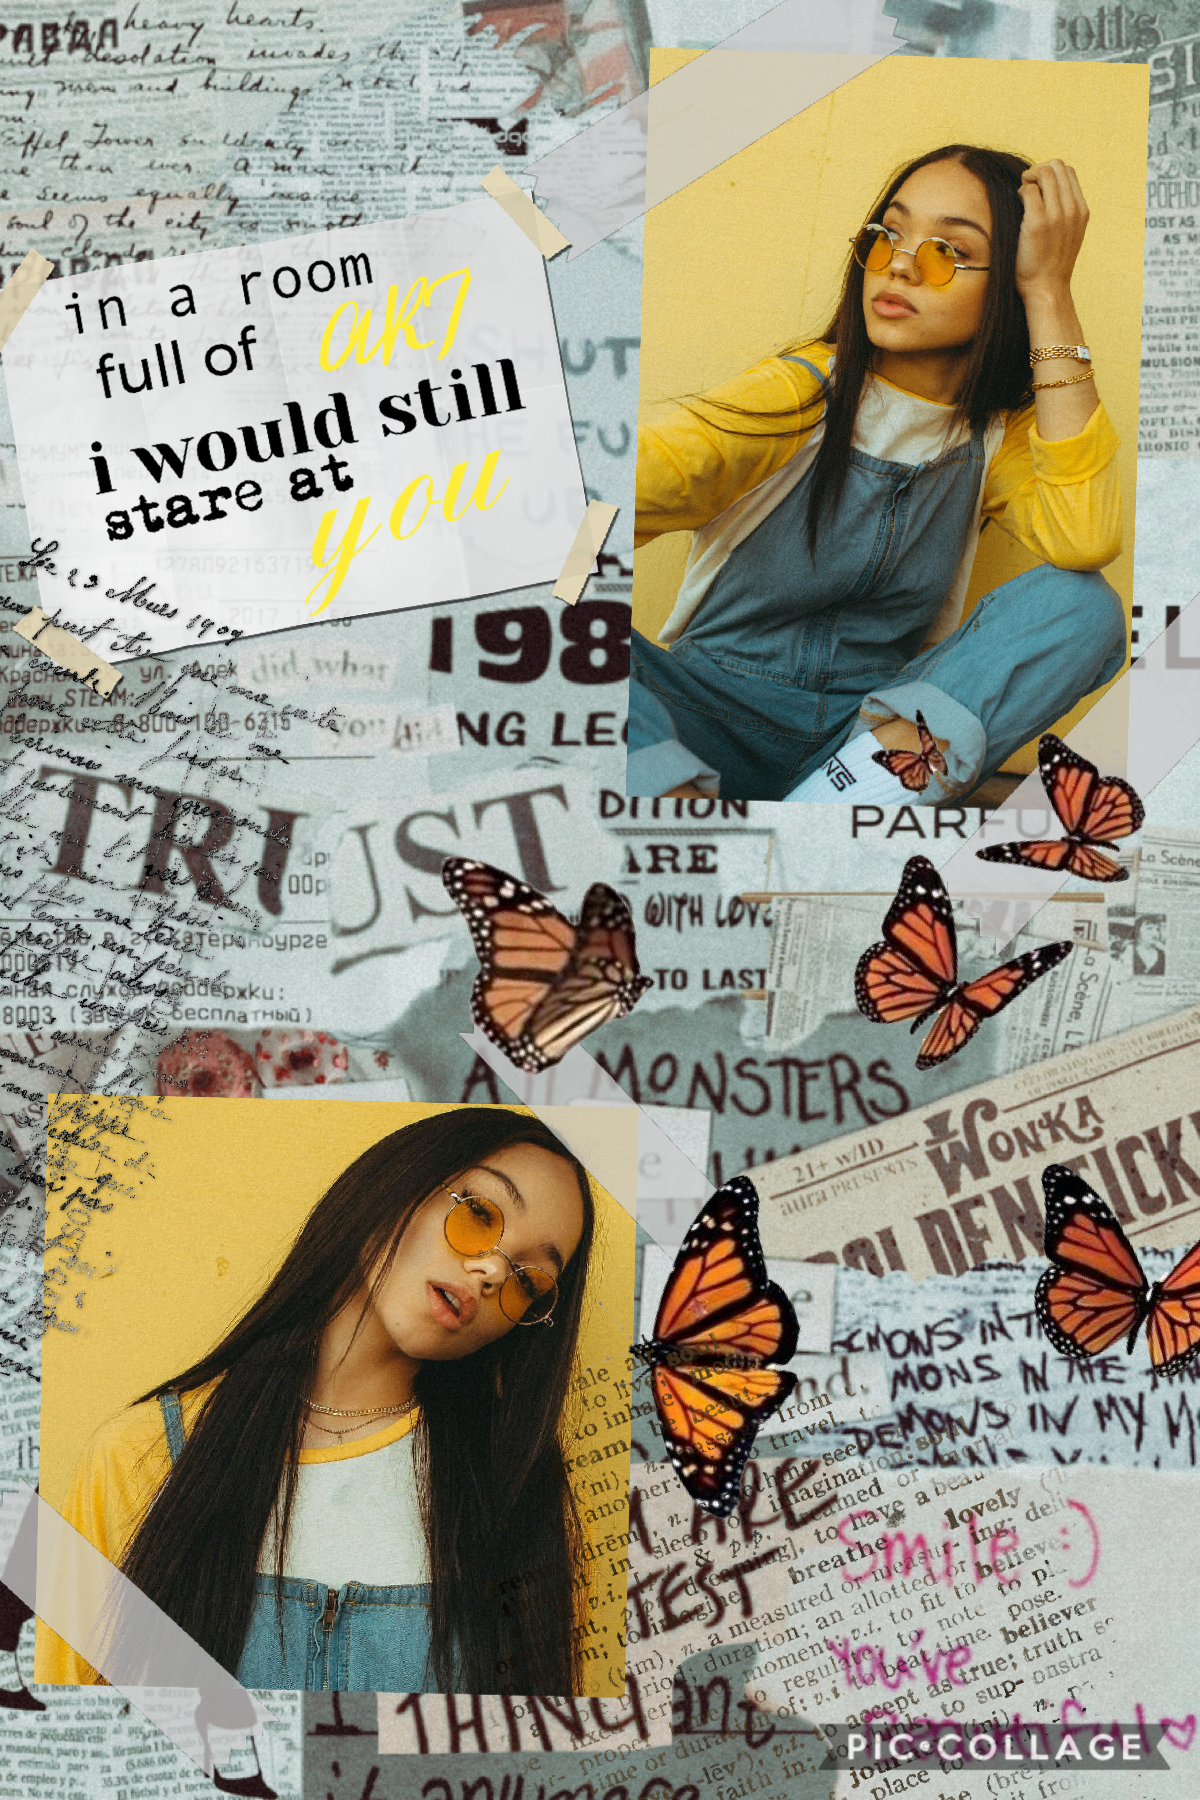 ✨tap✨     hoi guys hows it going from a 1/10 what do you think about this collage?     🤙🏻Lazza🤙🏻